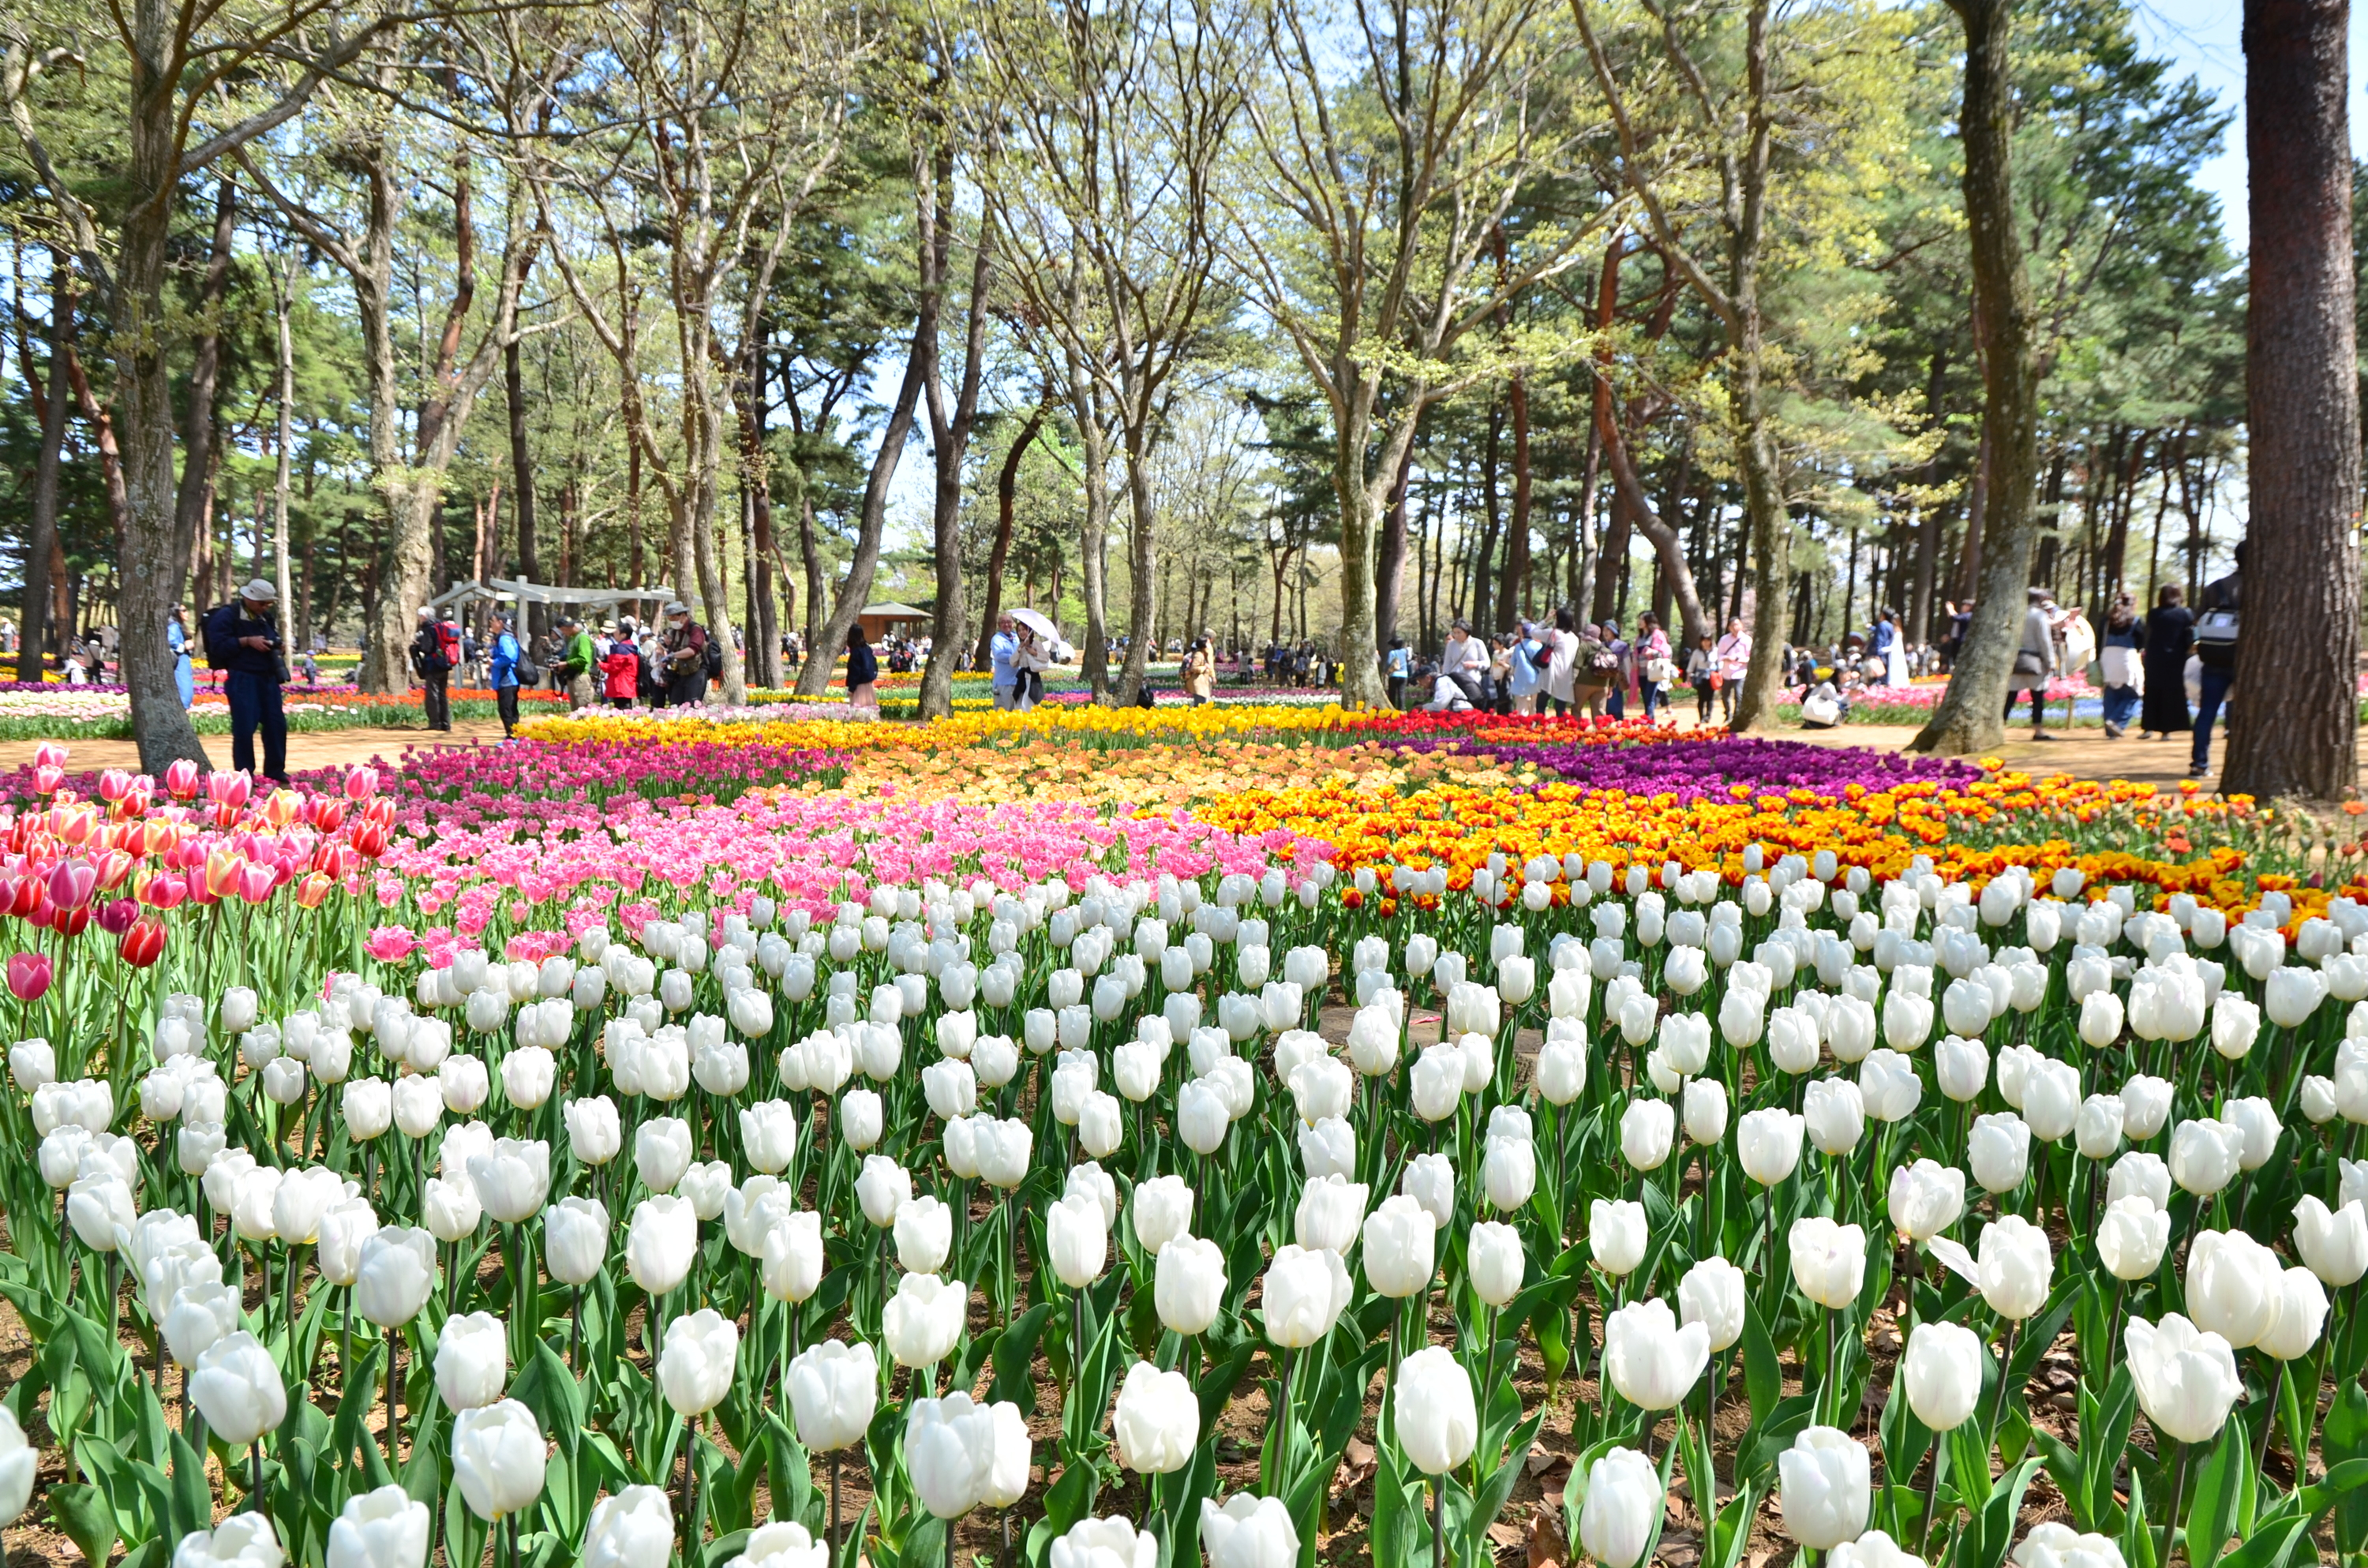 Take a virtual tour of Japan's most spectacular tulip garden